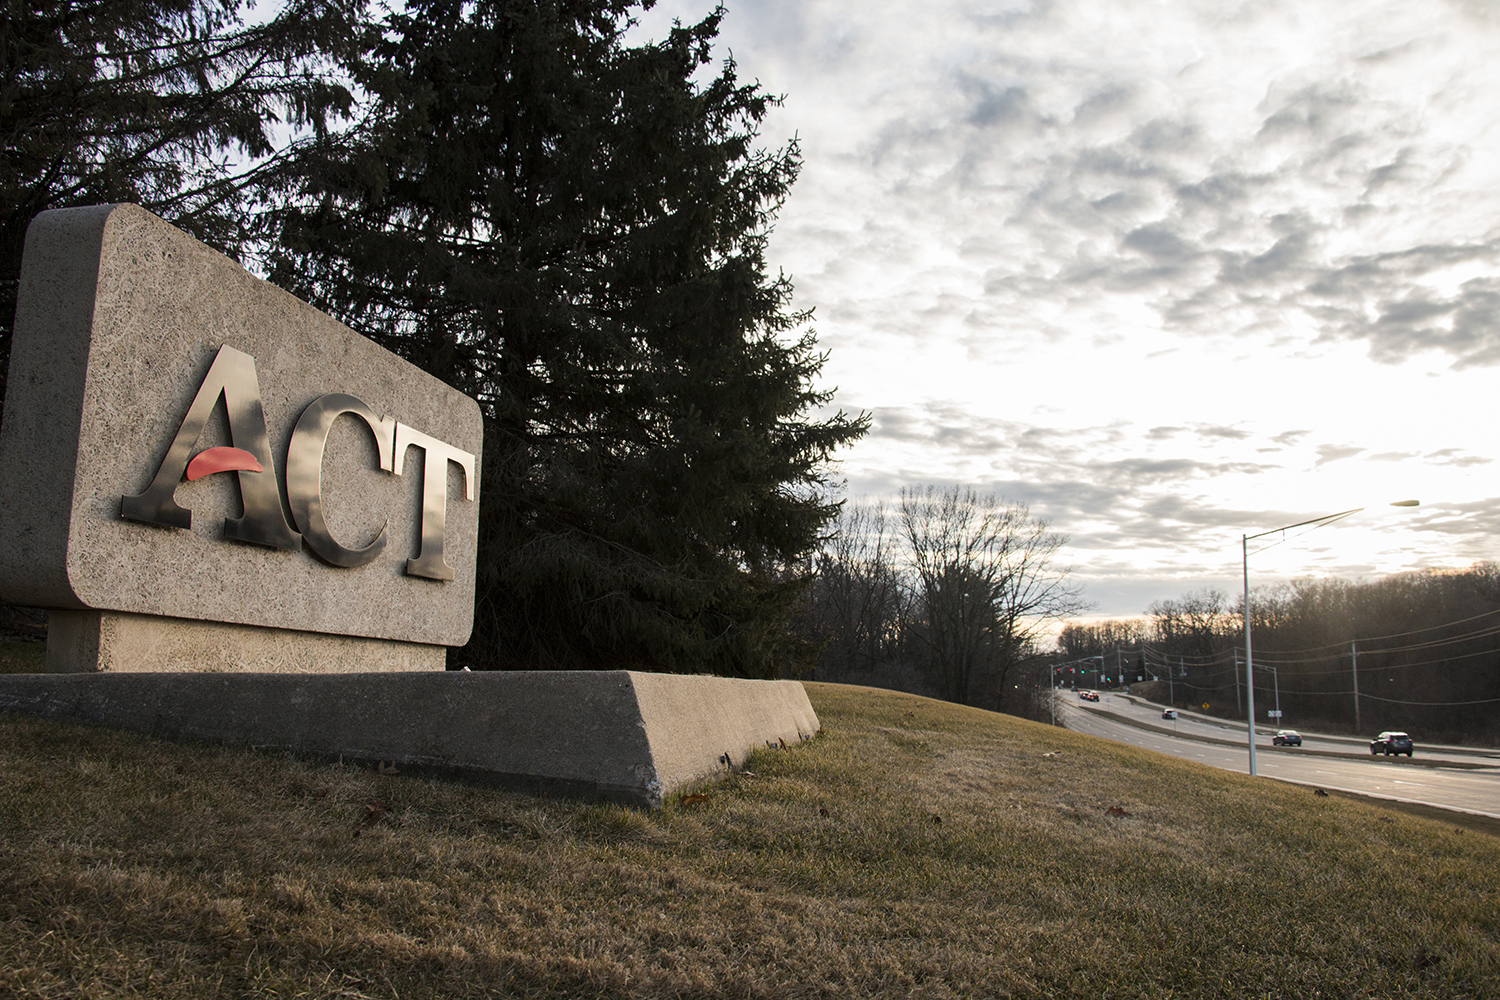 The ACT sign is seen outside of the ACT Headquarters on Monday, March 5, 2018.